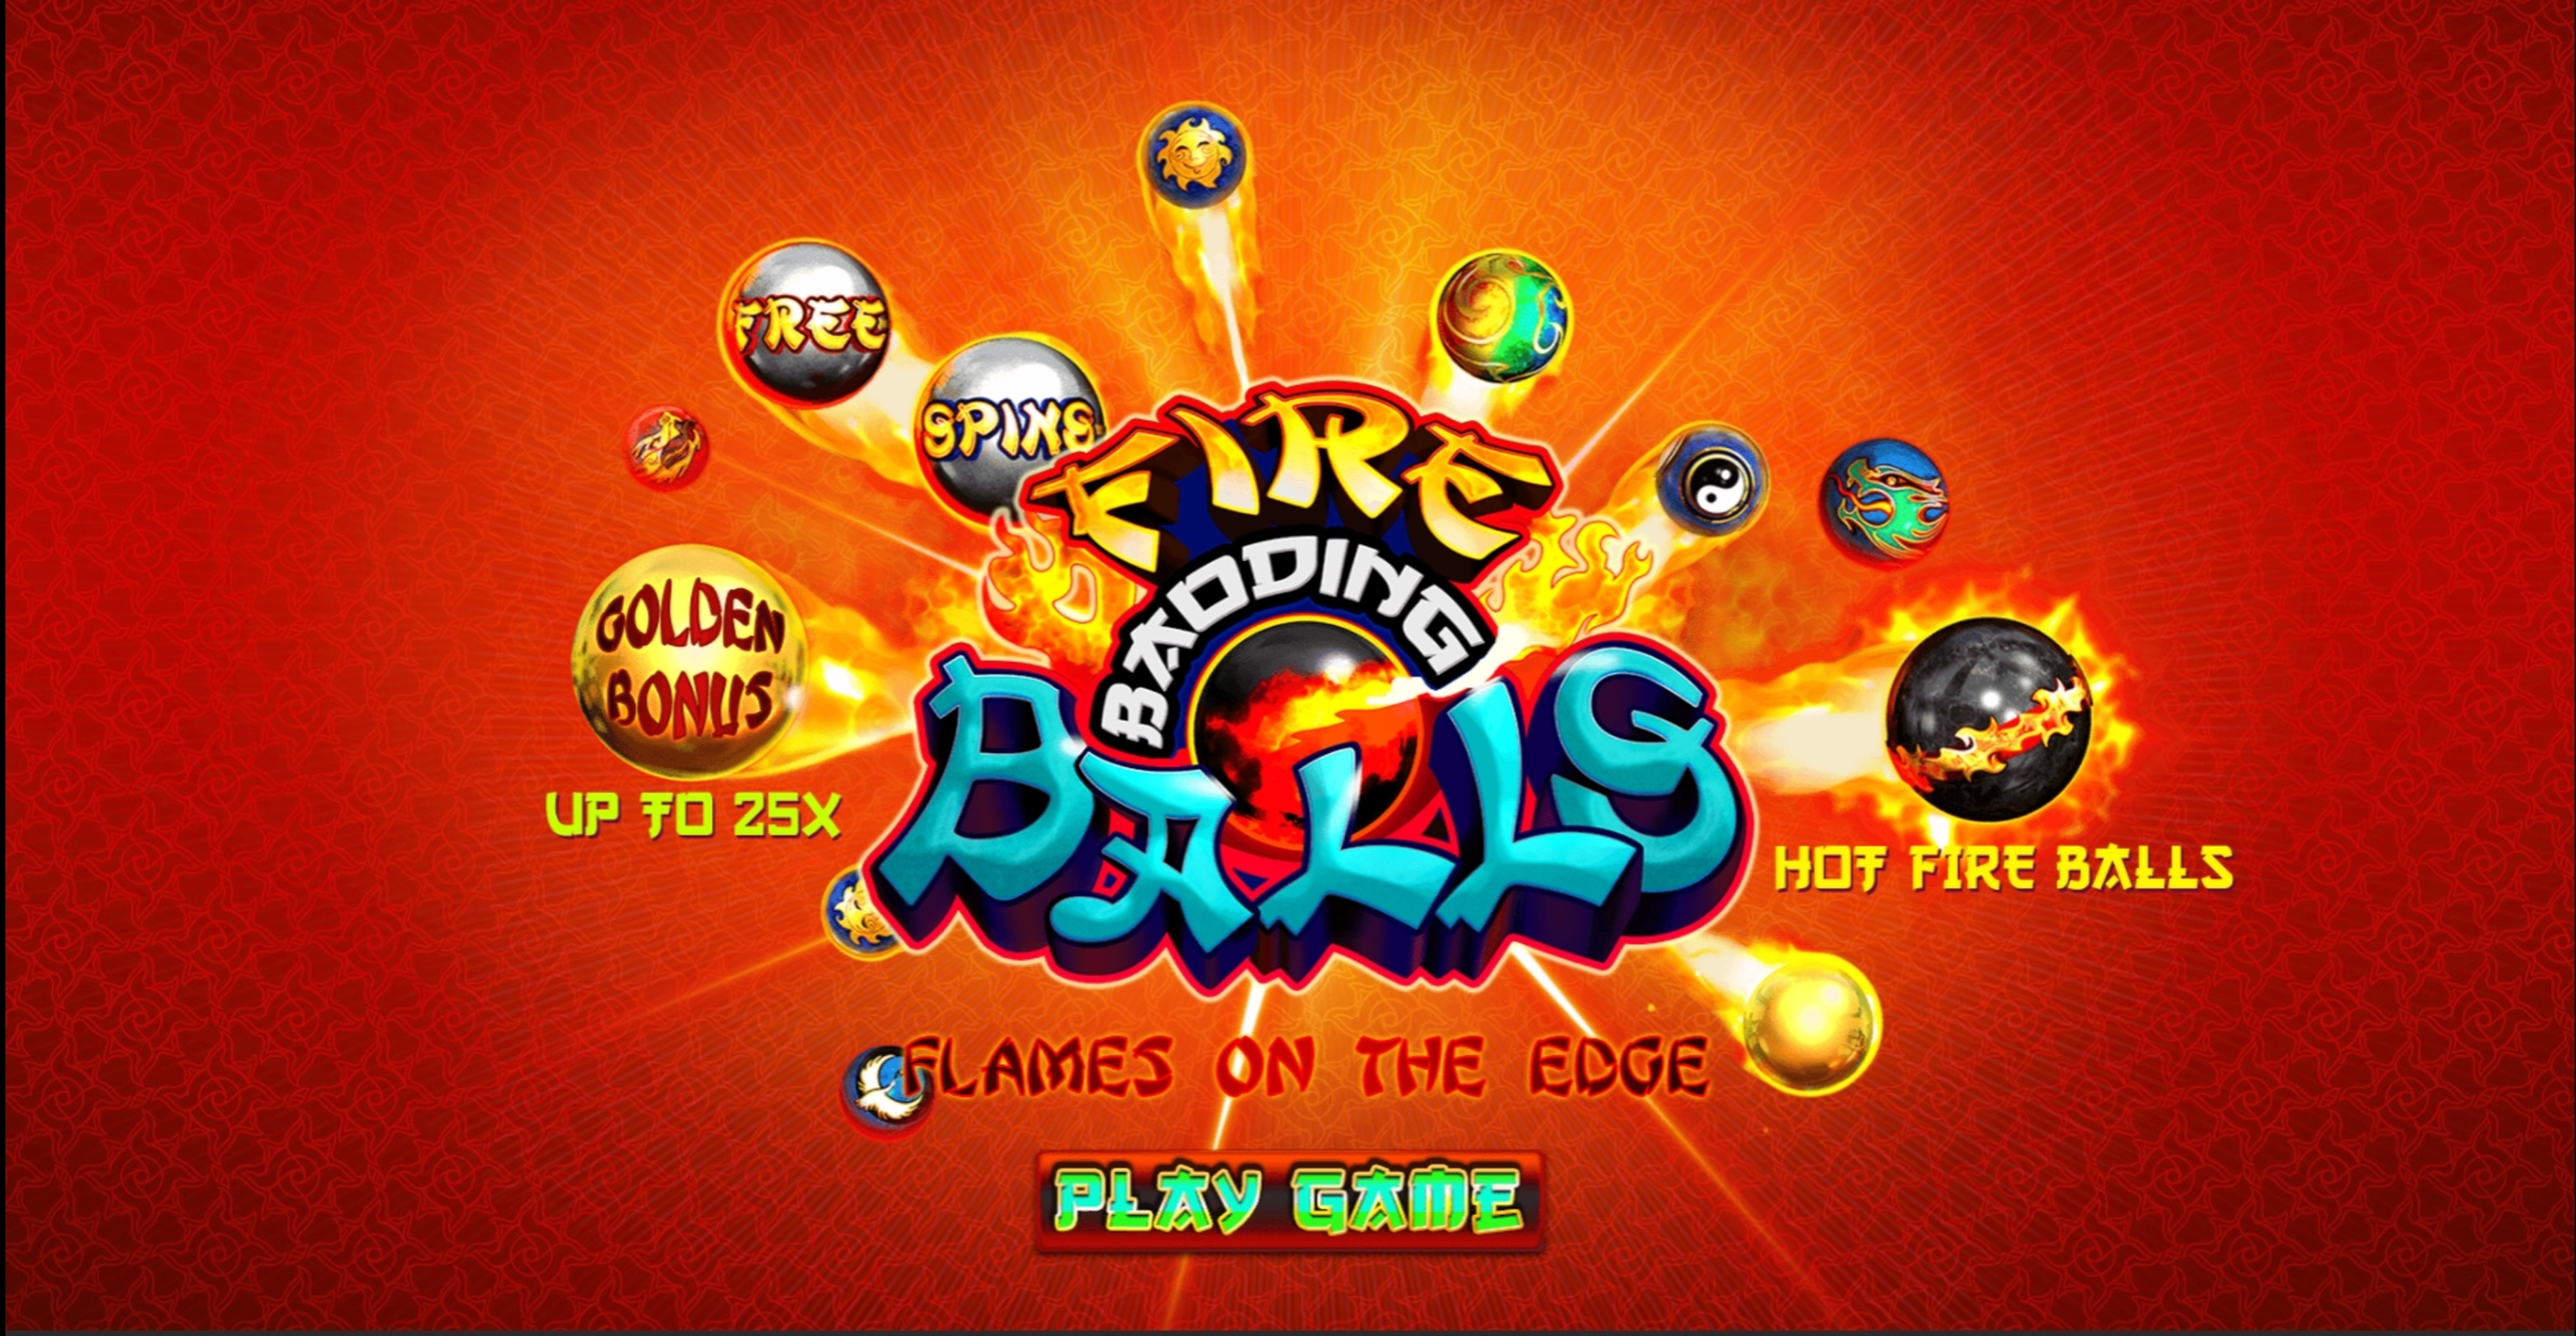 Win Money in Fire Baoding Balls Free Slot Game by Skywind